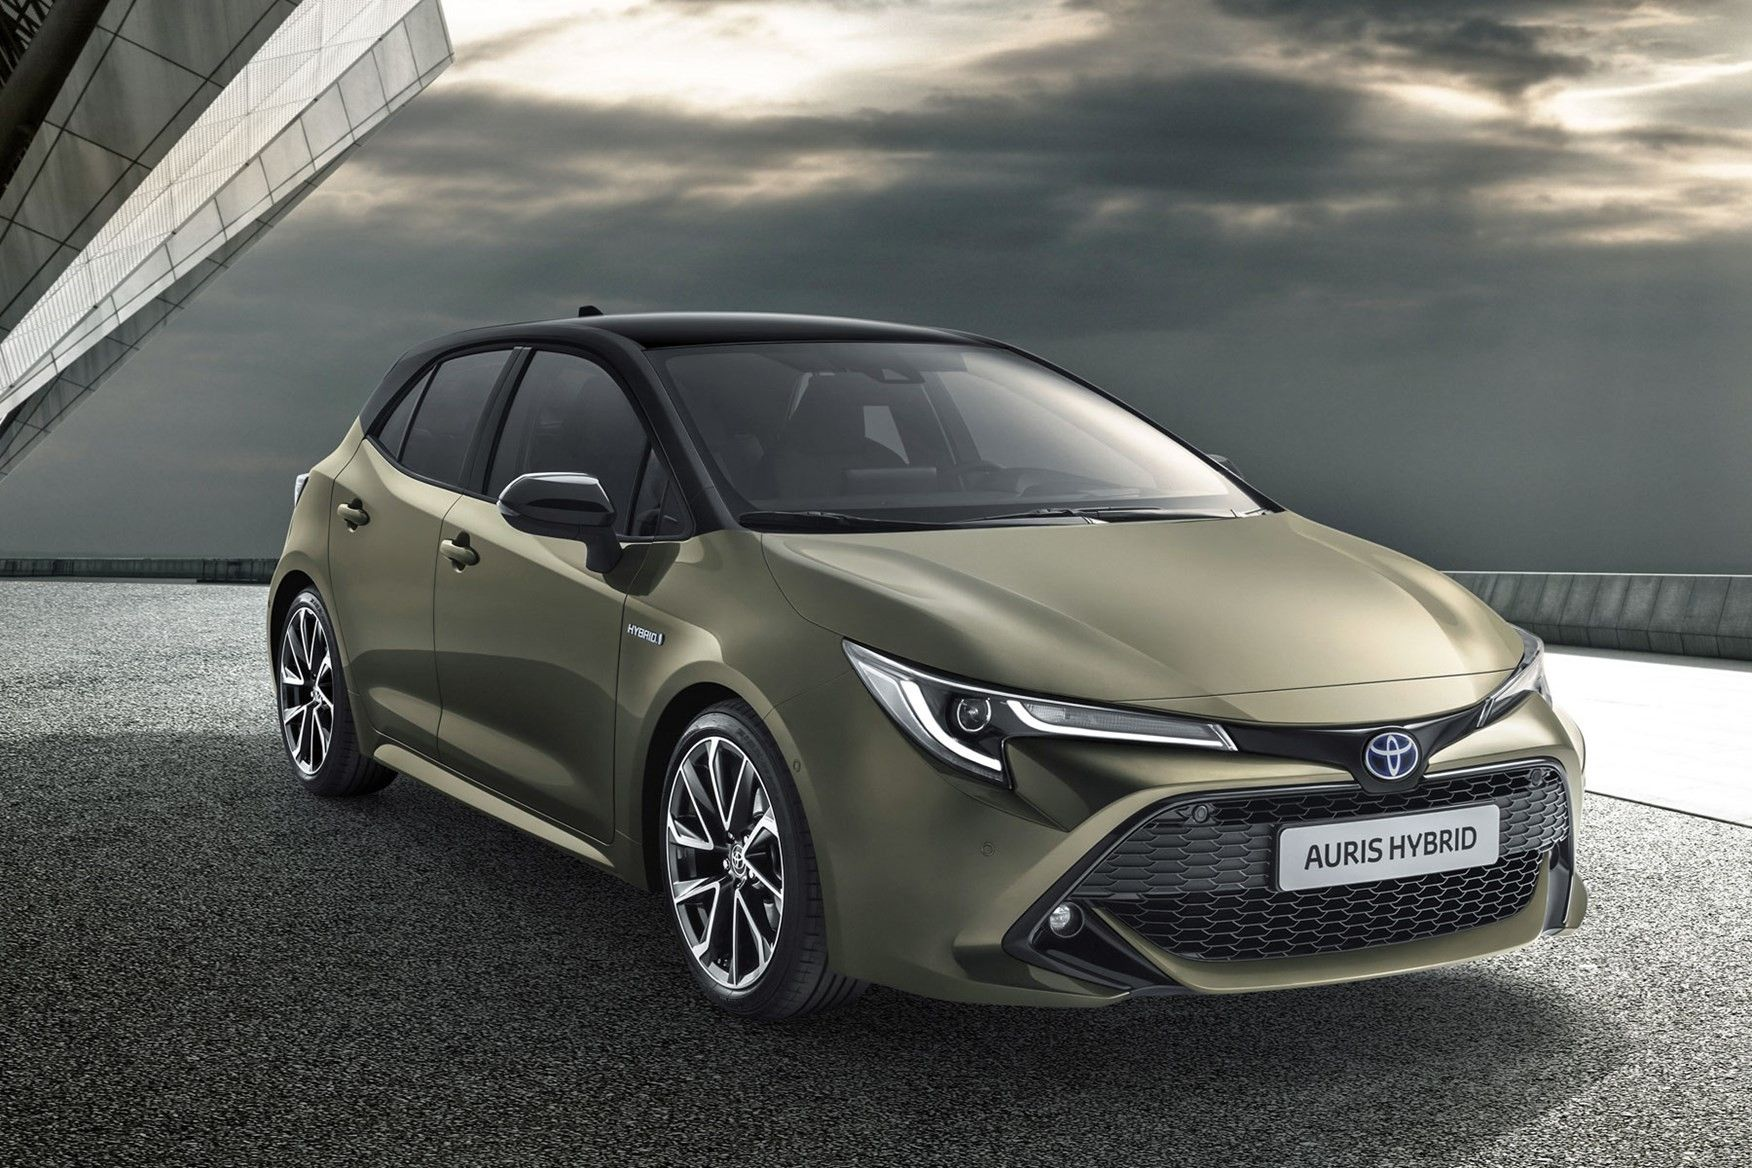 2019 Toyota Corolla Le Release Date Price And Review Toyota Corolla Le Toyota Corolla Toyota Corolla Hatchback